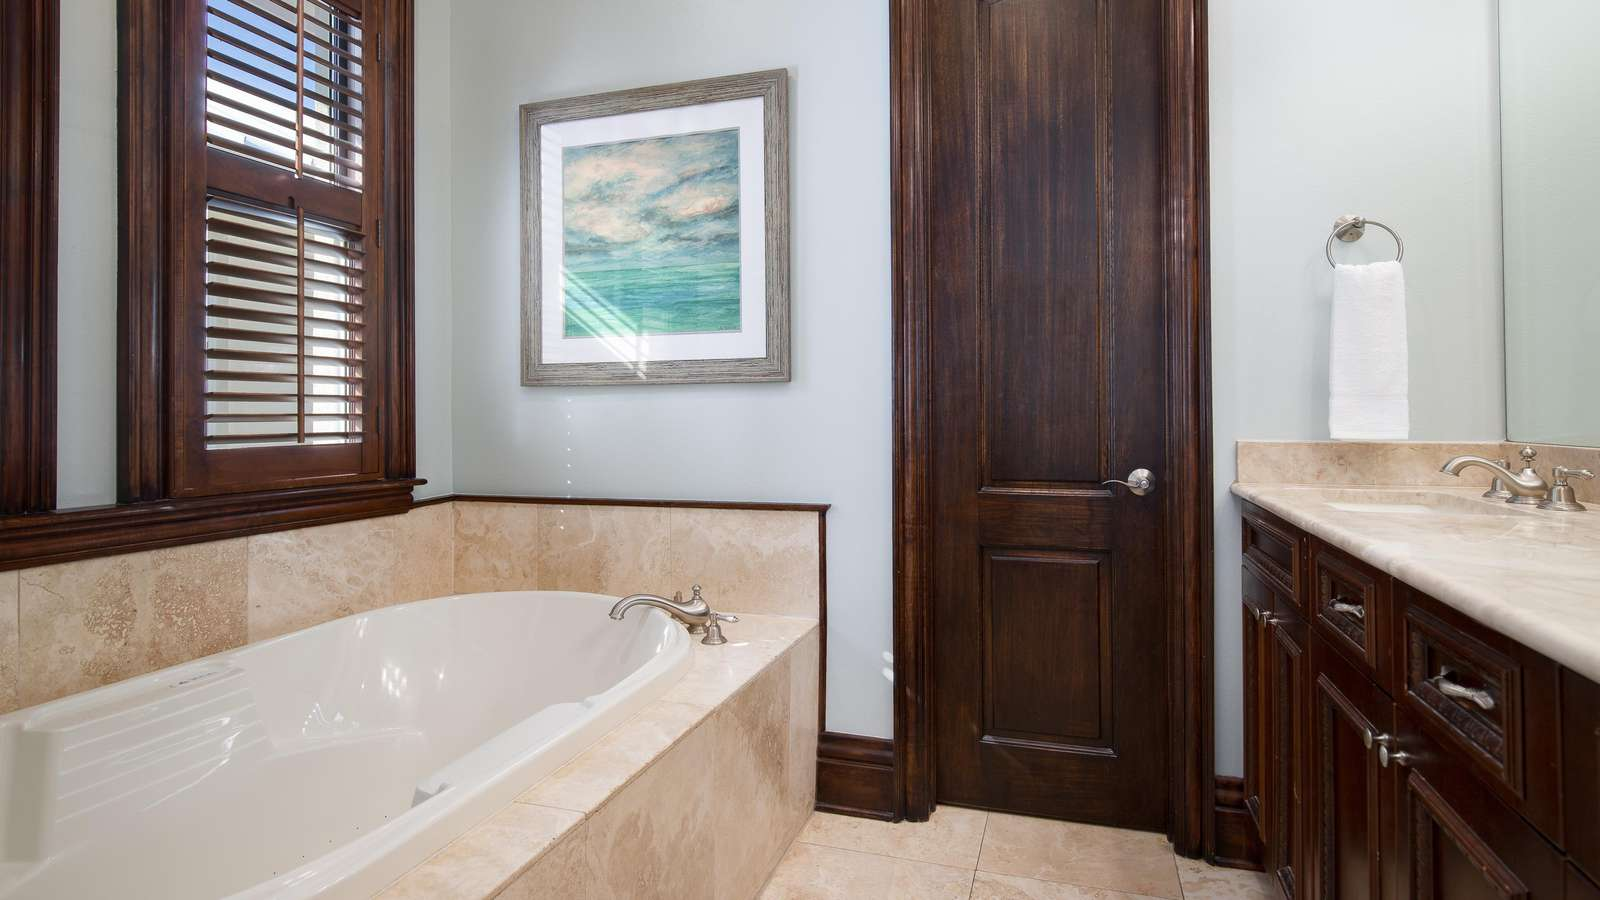 The large master bath features a huge soaking tub along with a separate walk in shower.